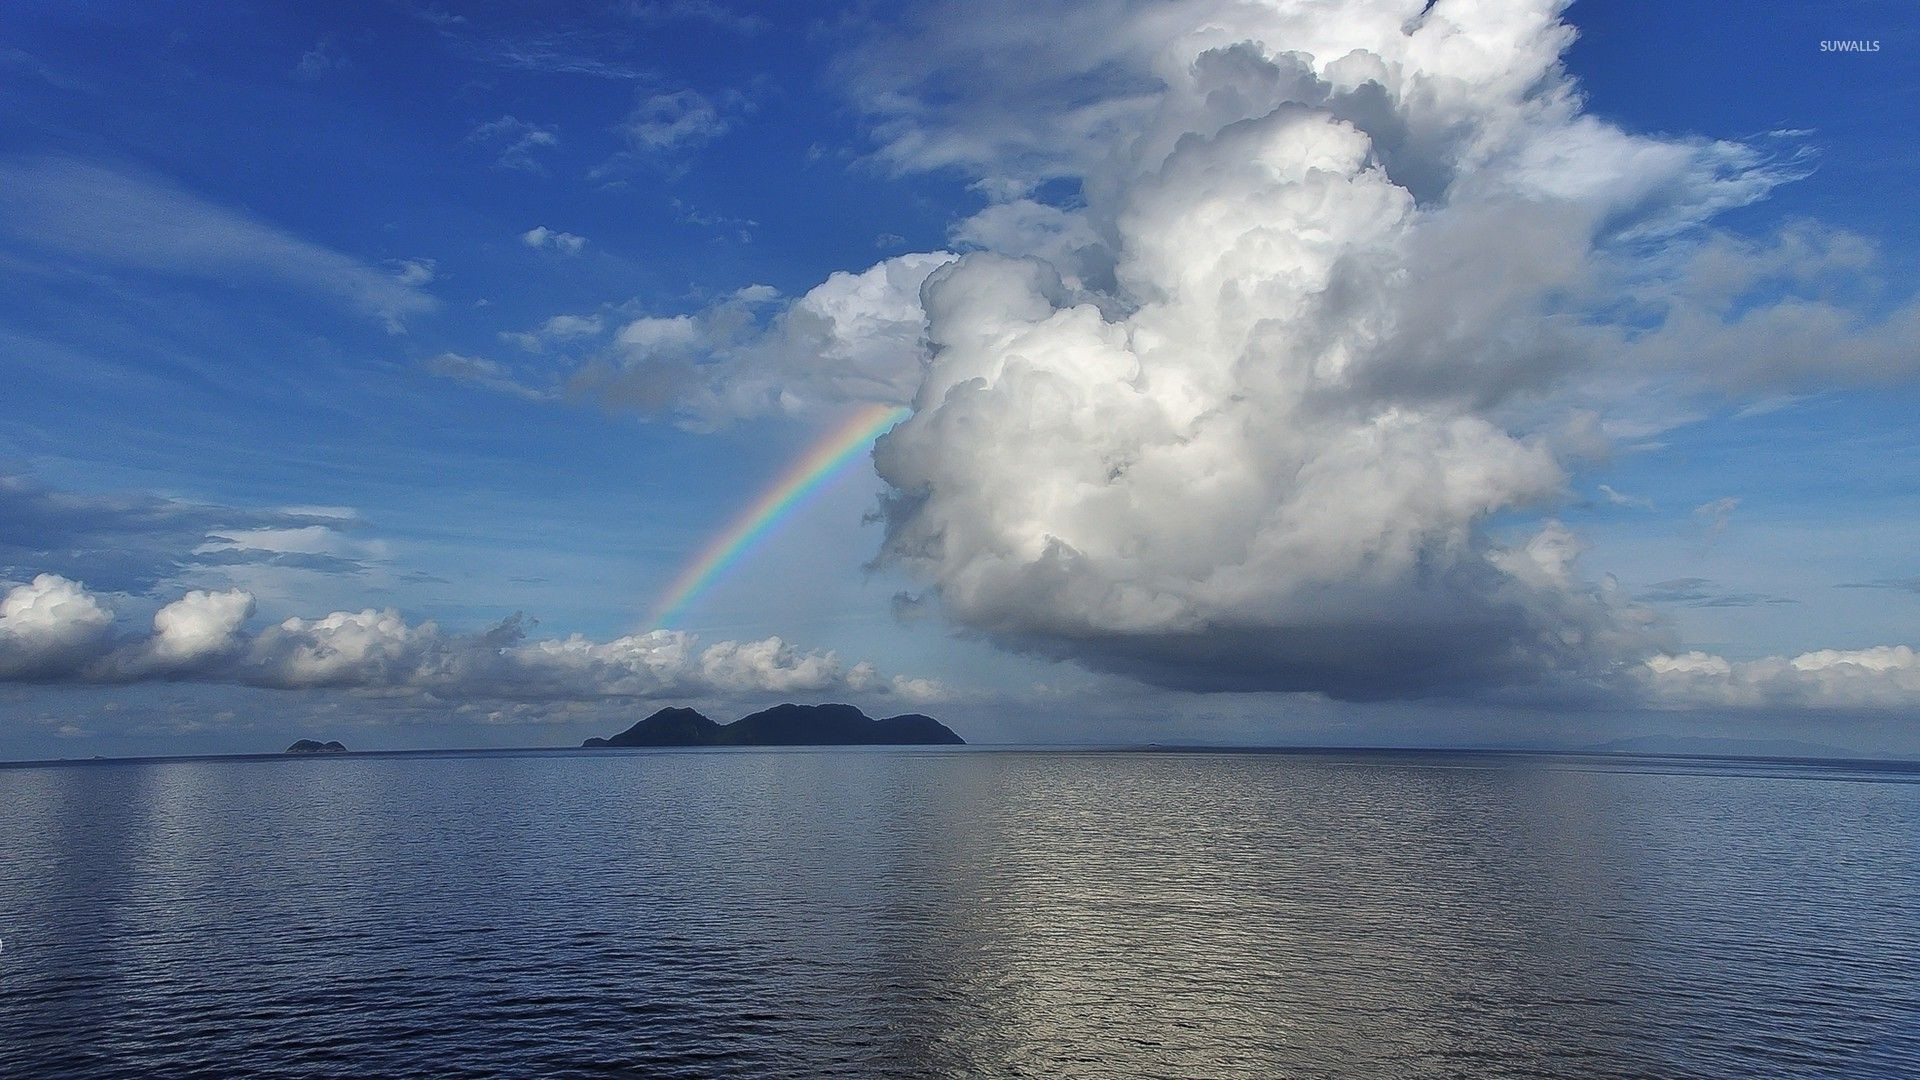 Rainbow in the middle of the ocean wallpaper jpg